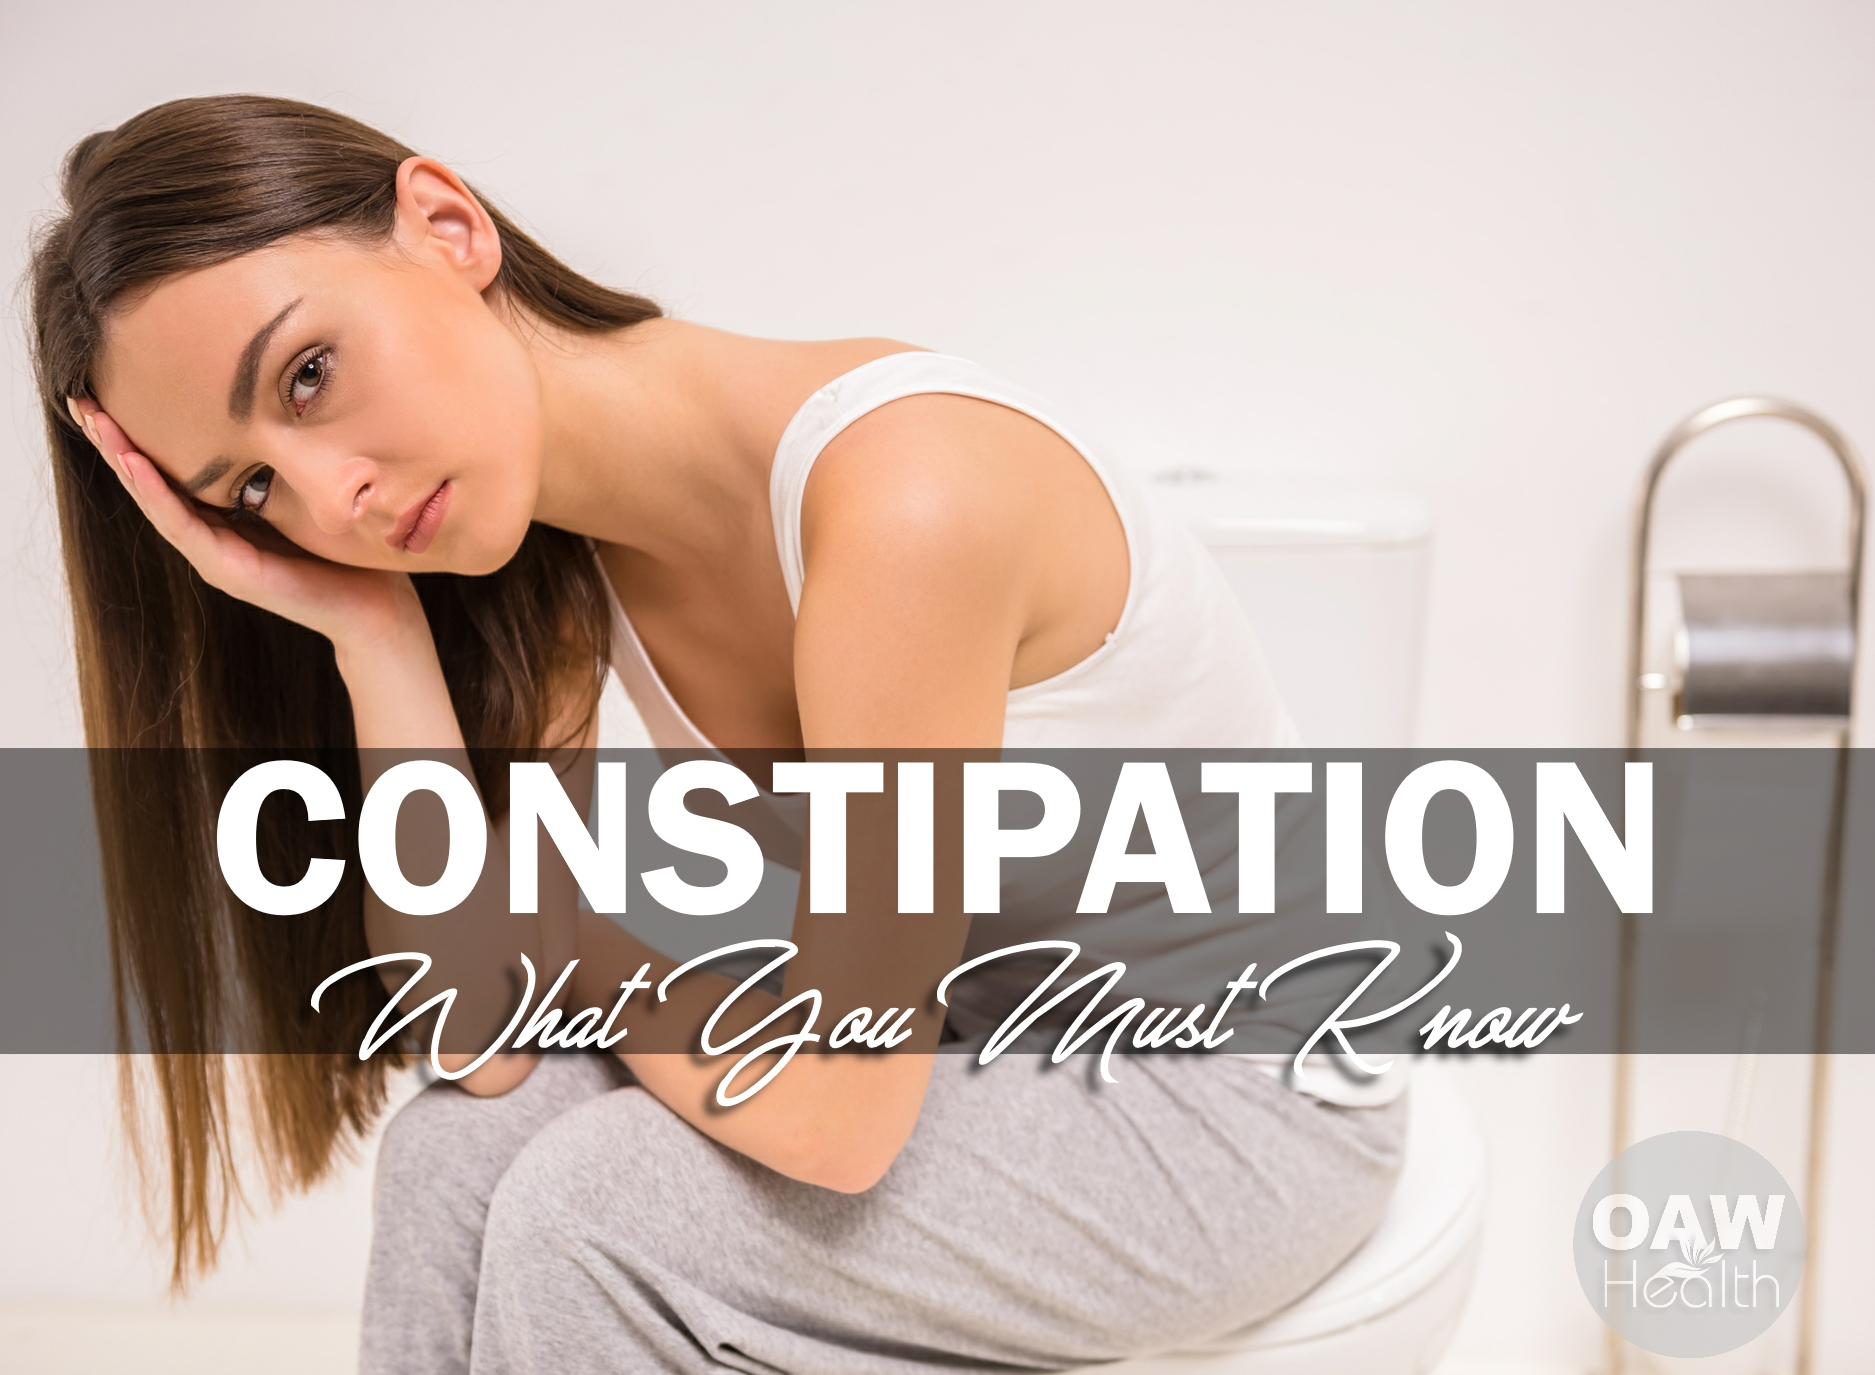 What You Must Know About Constipation